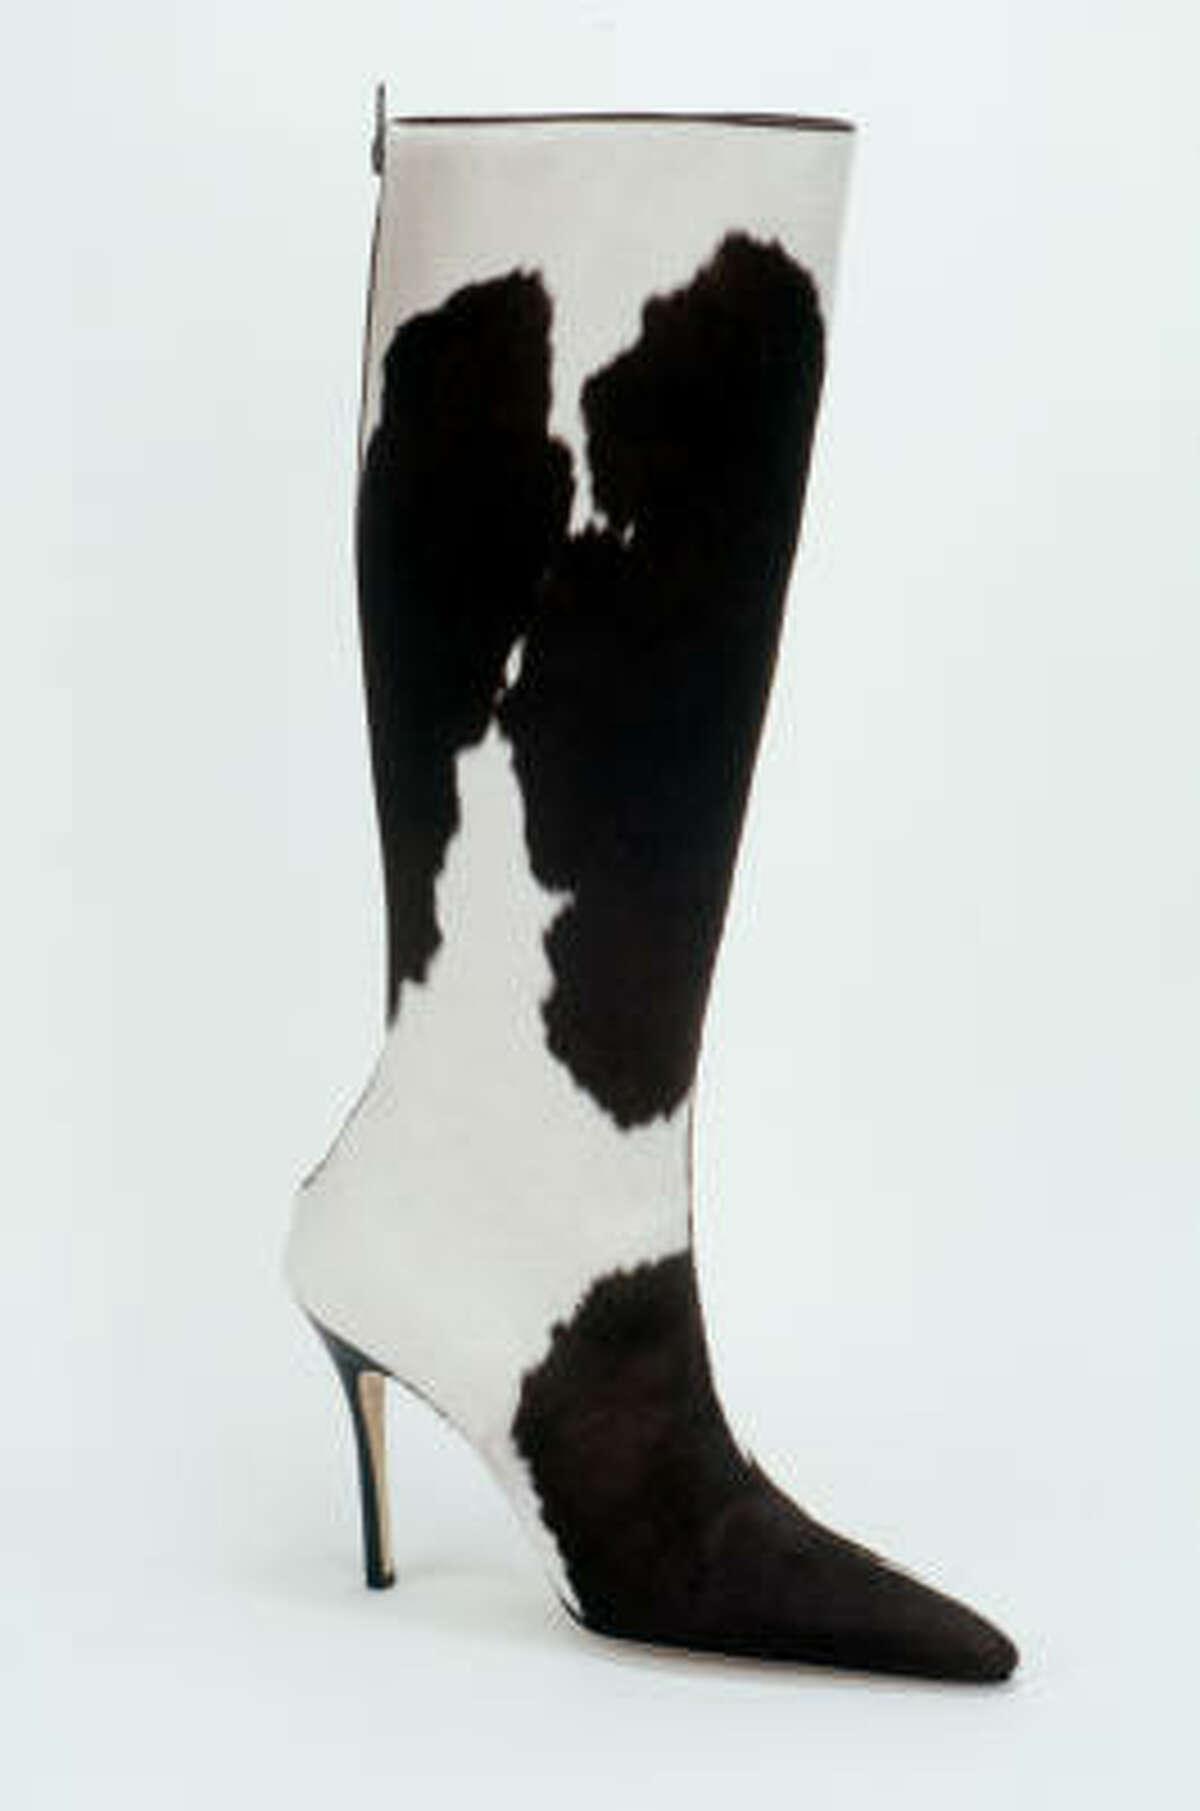 Wear skinny high heels with pointy toes. Legs look slim and sexy in skirts paired with a boot or shoe that has a tapered toe and at least a 2-inch stiletto. A slender toe and thin heel work to extend the narrow silhouette of calves. Square-toed shoes with a chunky heel give the appearance of a shorter, bulky leg.